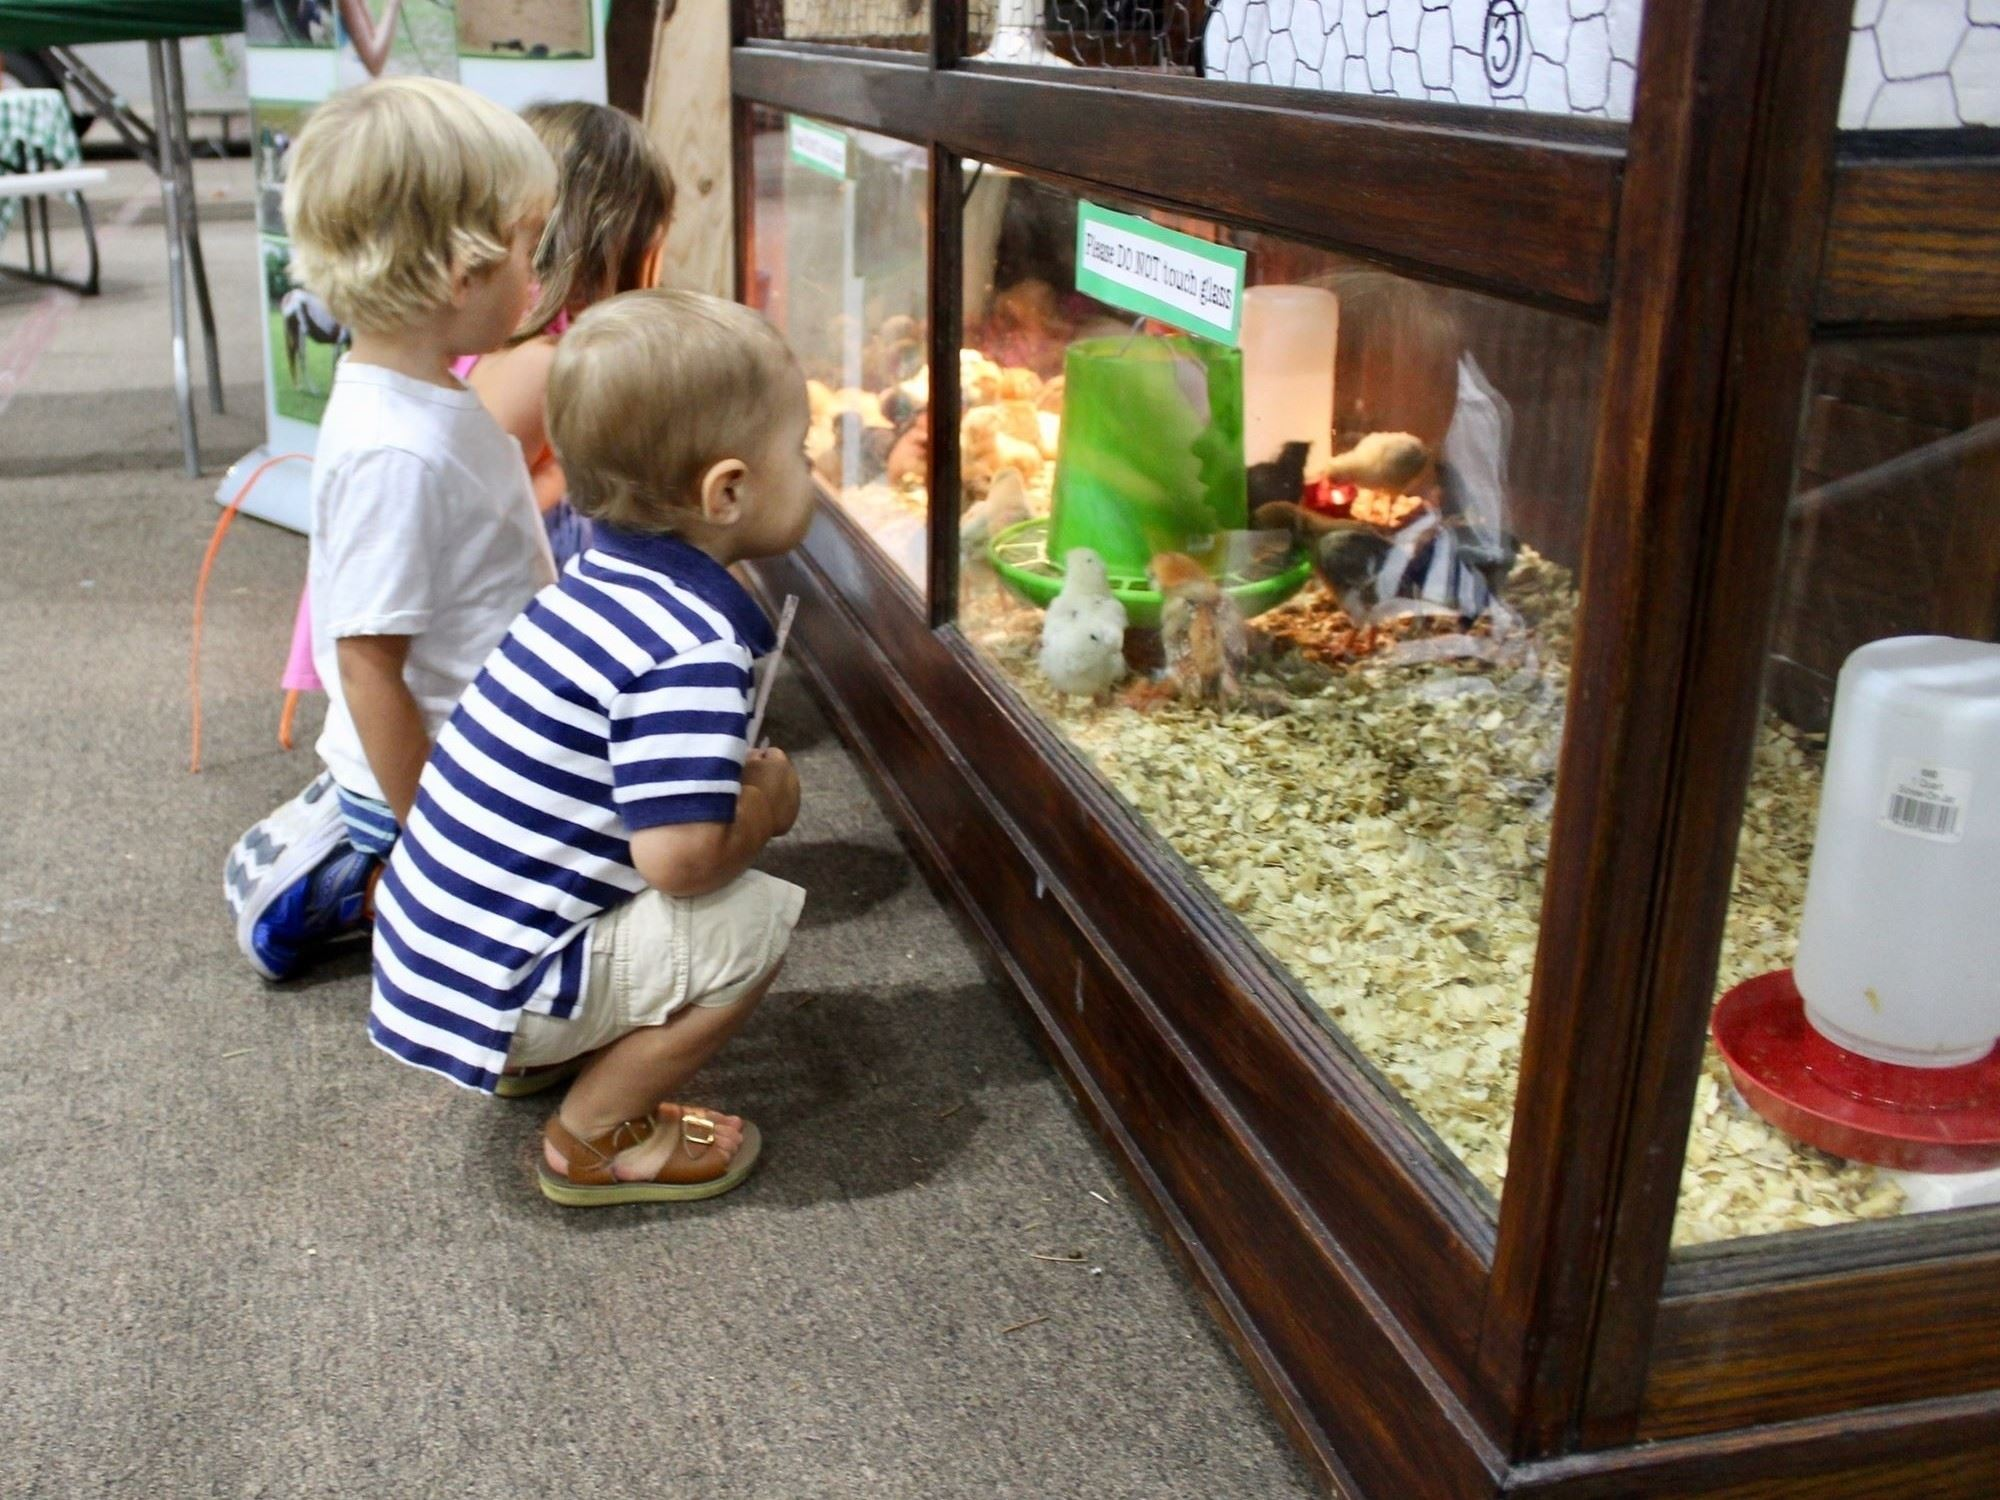 Children looking through the hatching cabinet at baby chicks